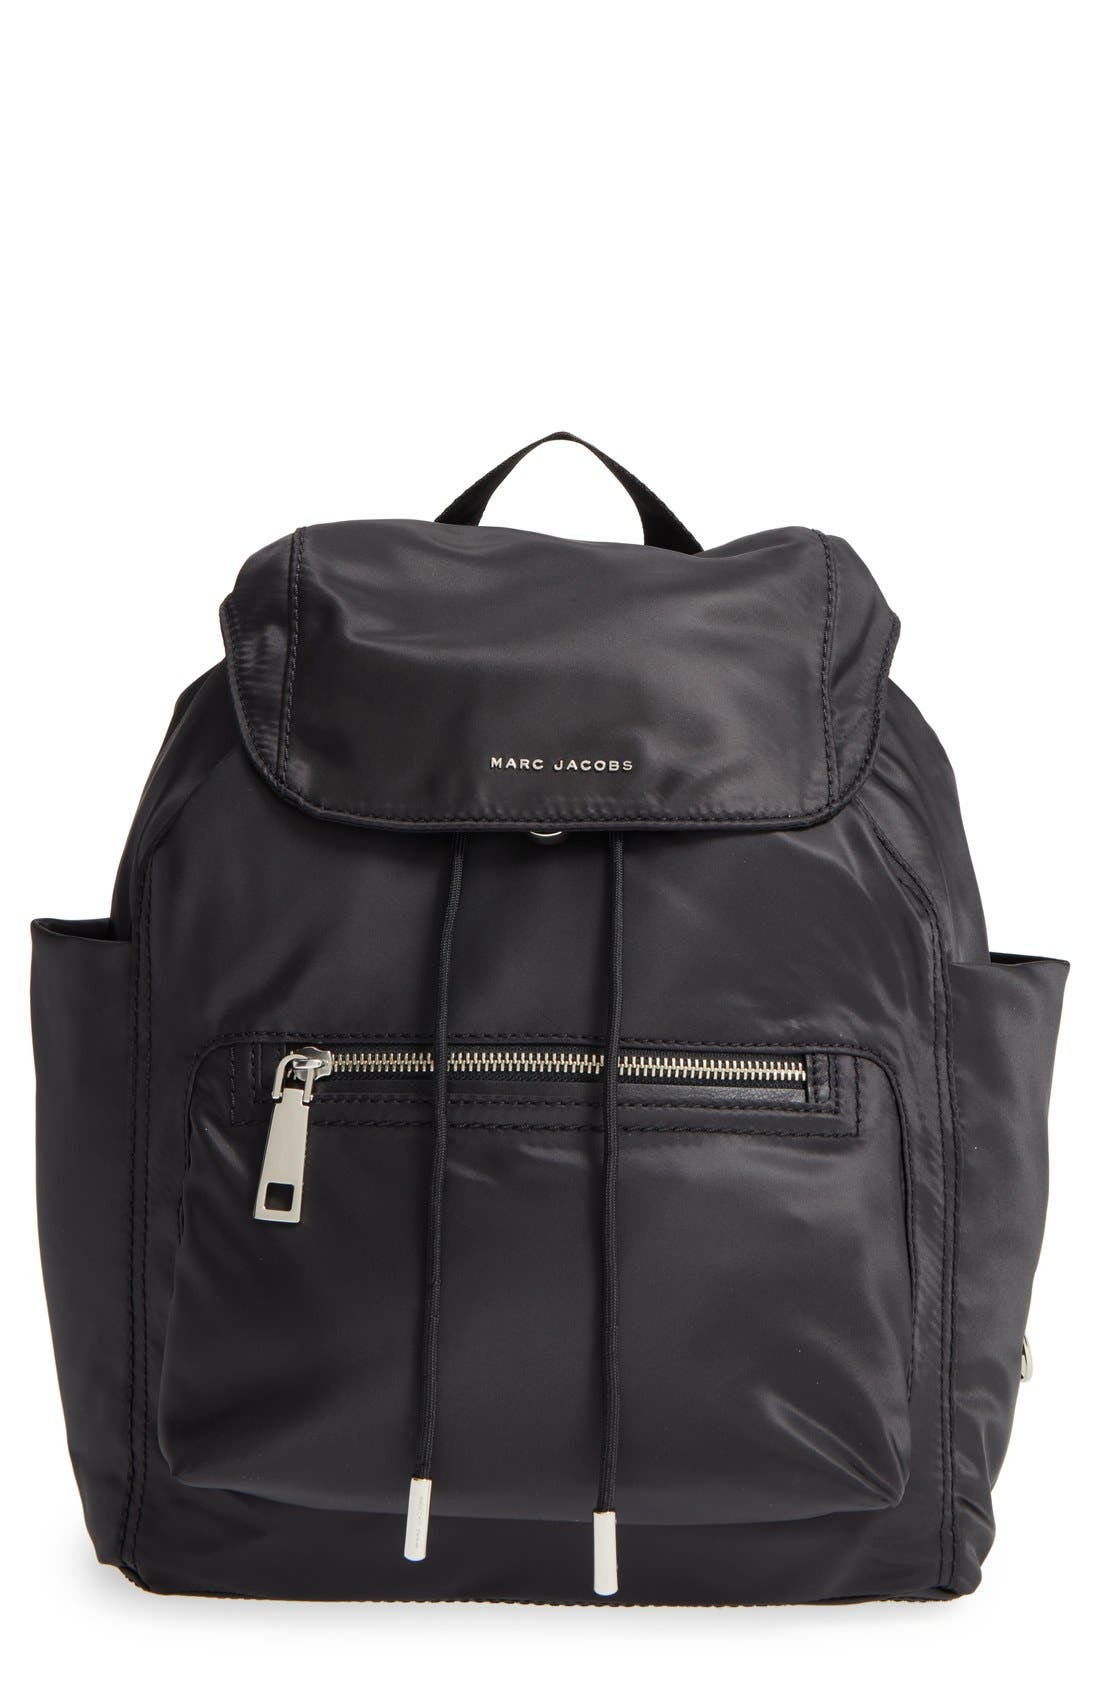 MARC JACOBS 'Easy' Backpack, Main, color, 001